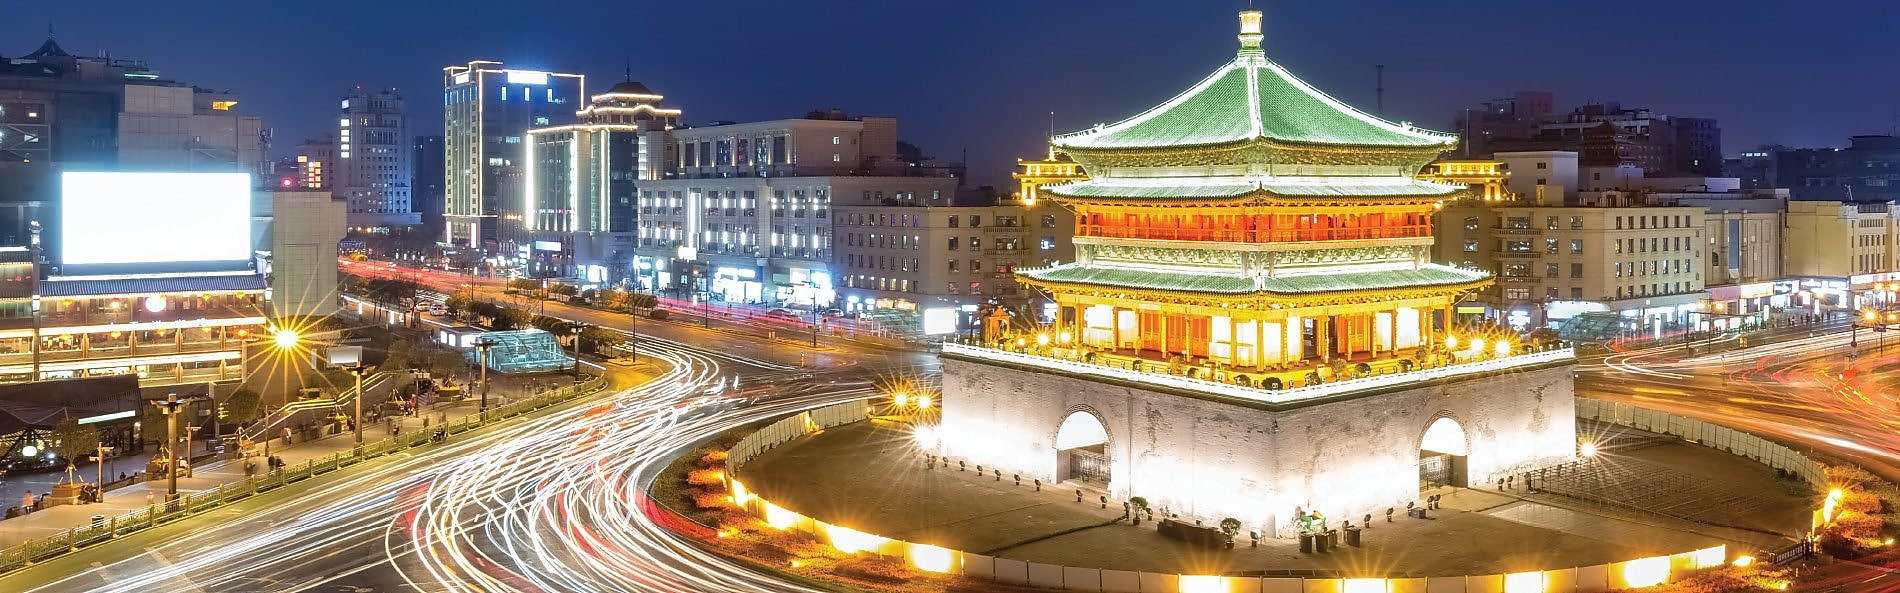 night view of xian bell tower